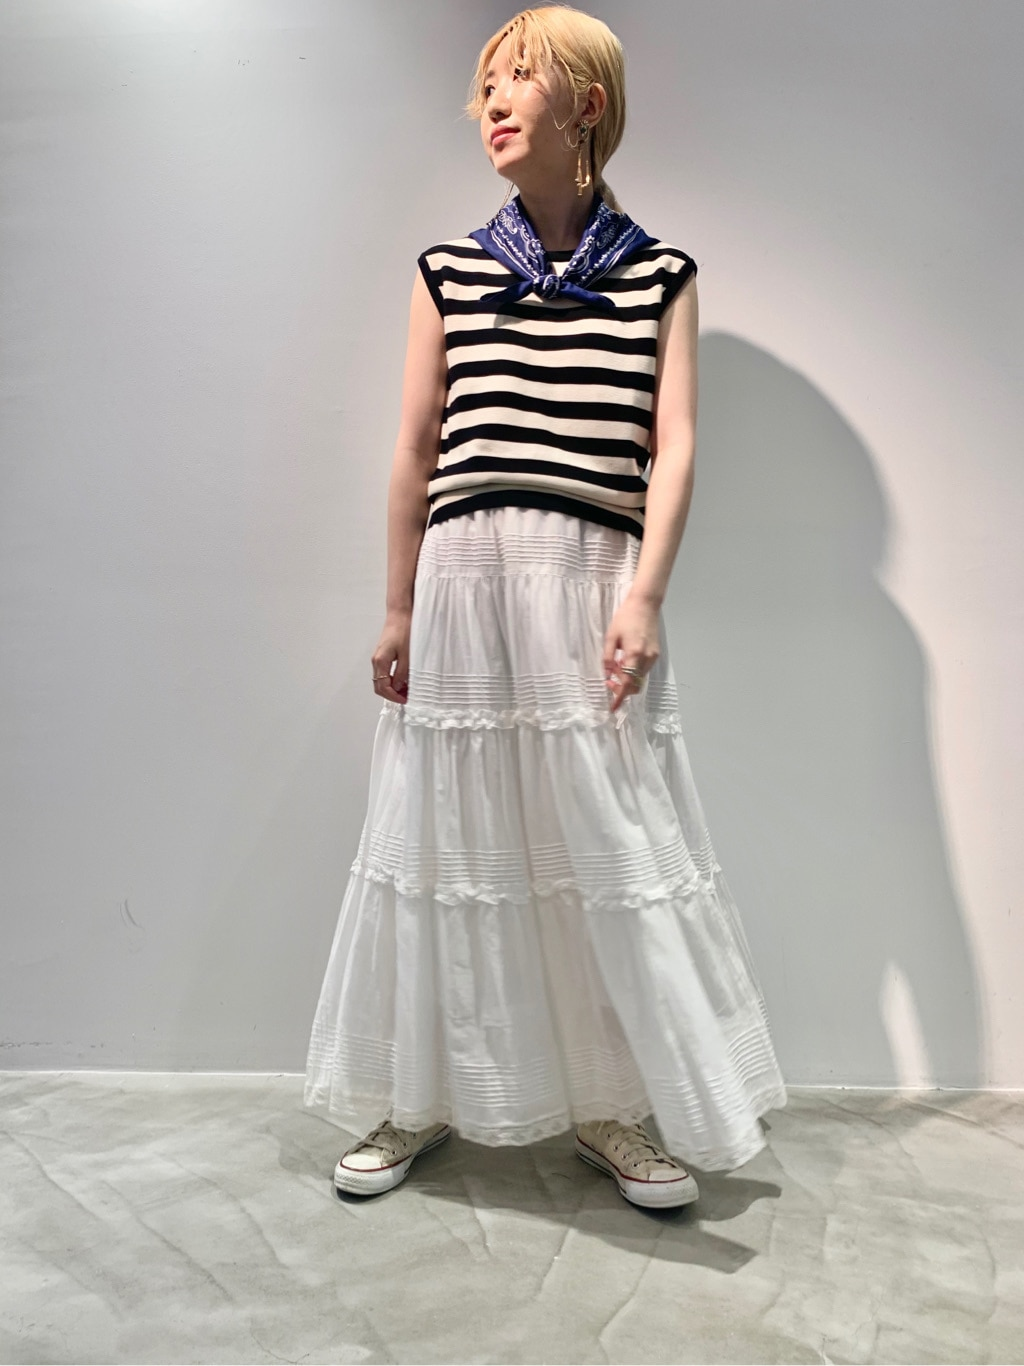 Dot and Stripes CHILD WOMAN ラフォーレ原宿 身長:160cm 2020.06.25